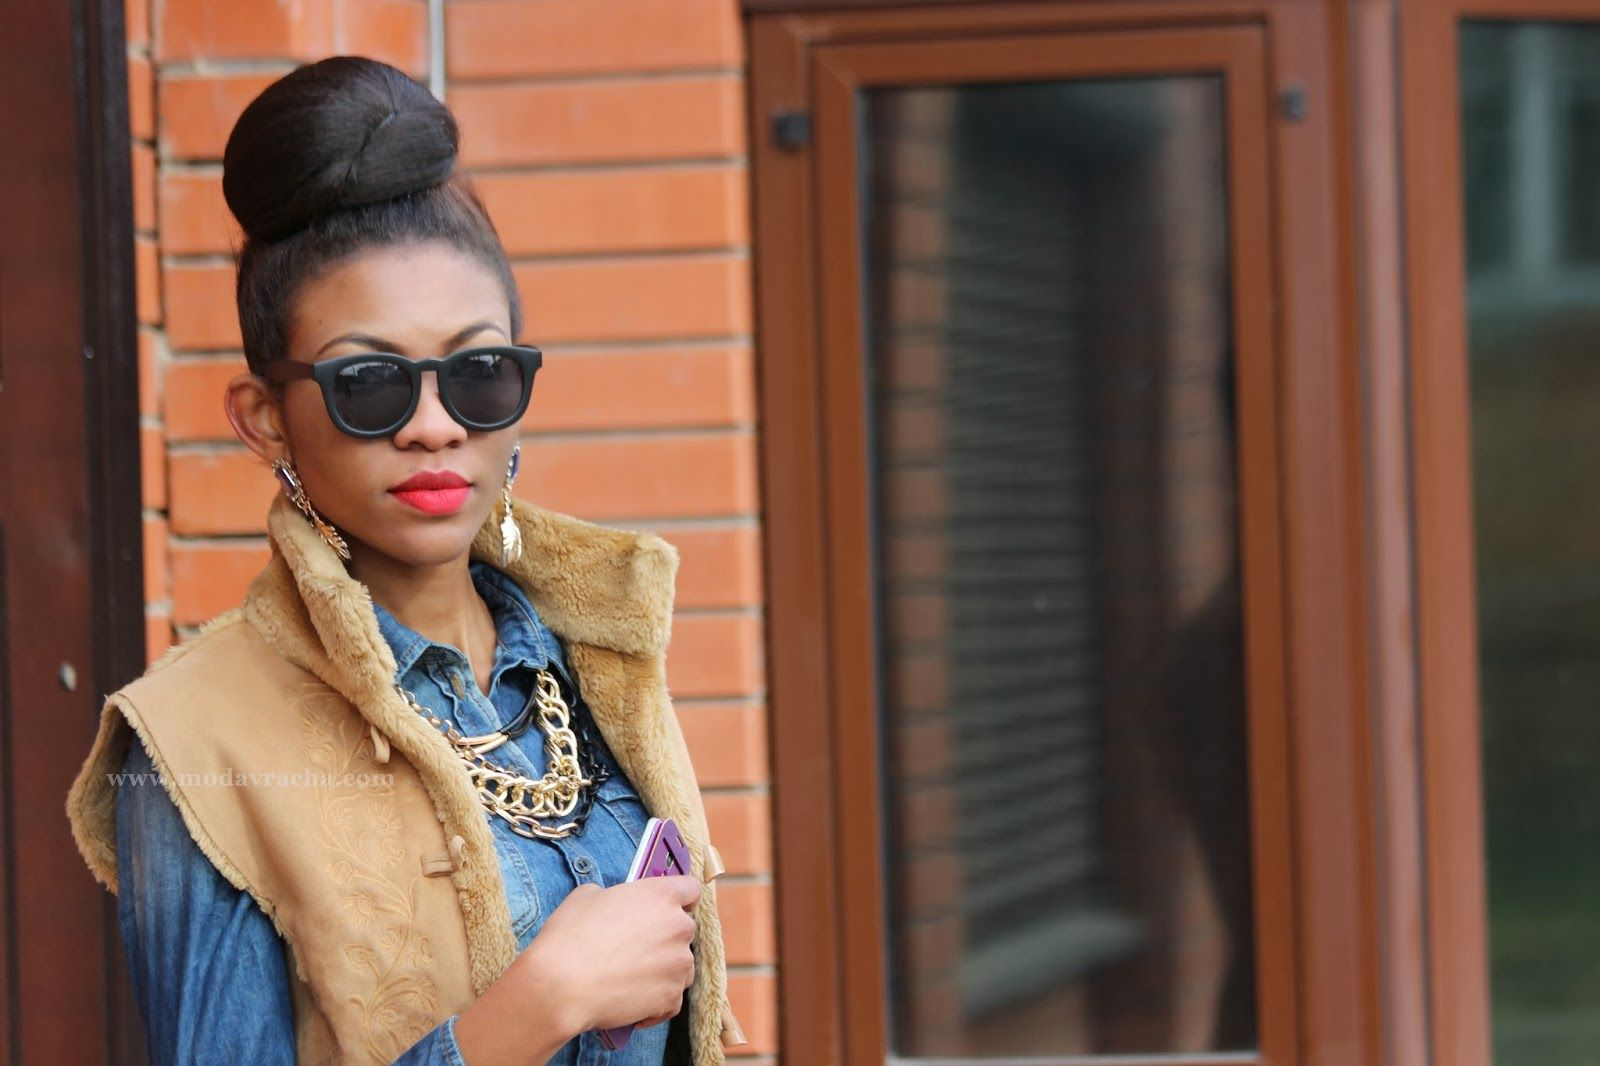 ModaVracha's Spot | Personal Style | Fashion Blog: Denim Shirt, Pencil Midi Skirt And Gilet Outfit